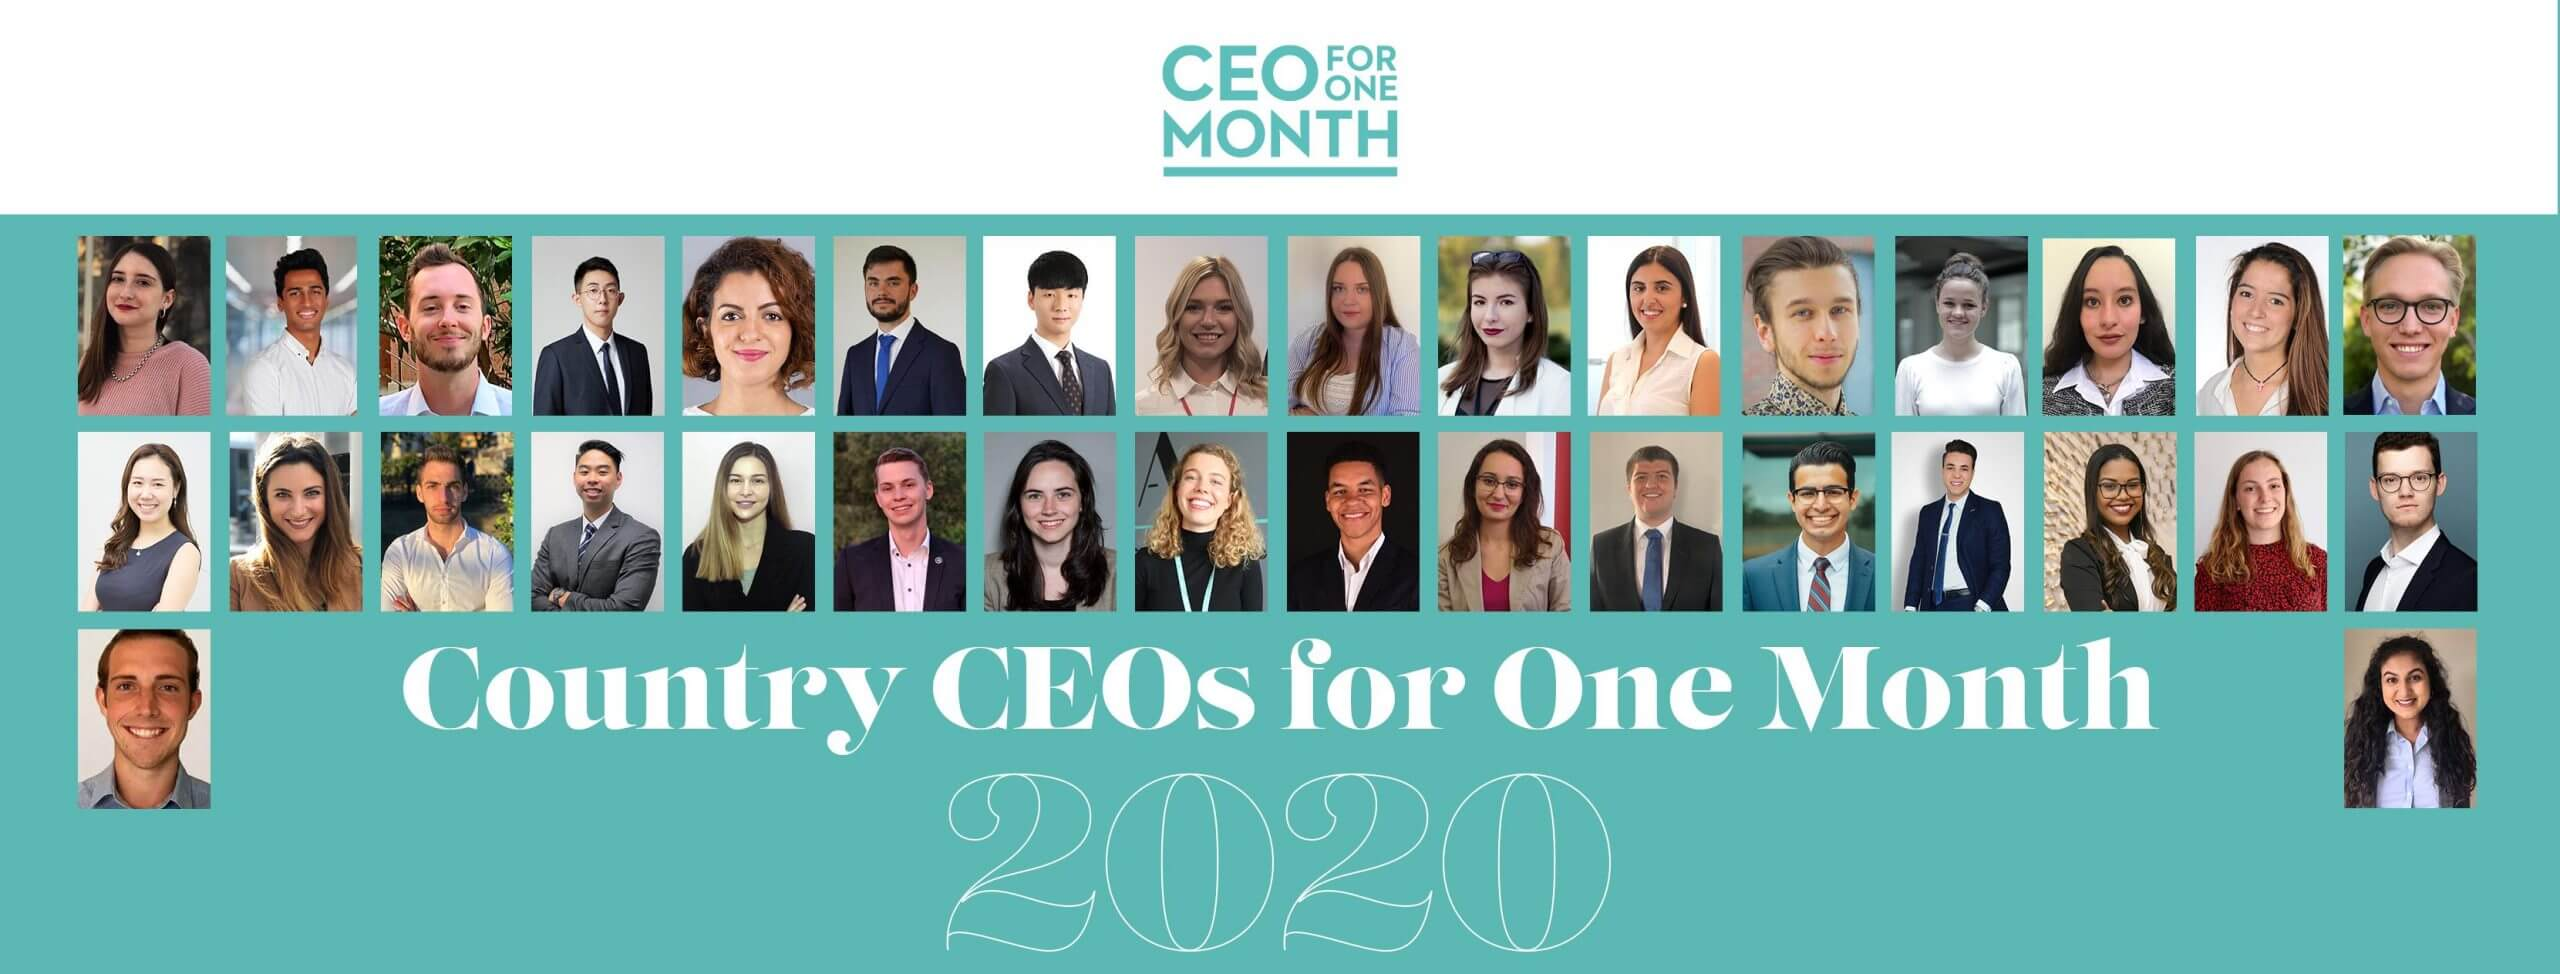 Global CEO for One Month 2020